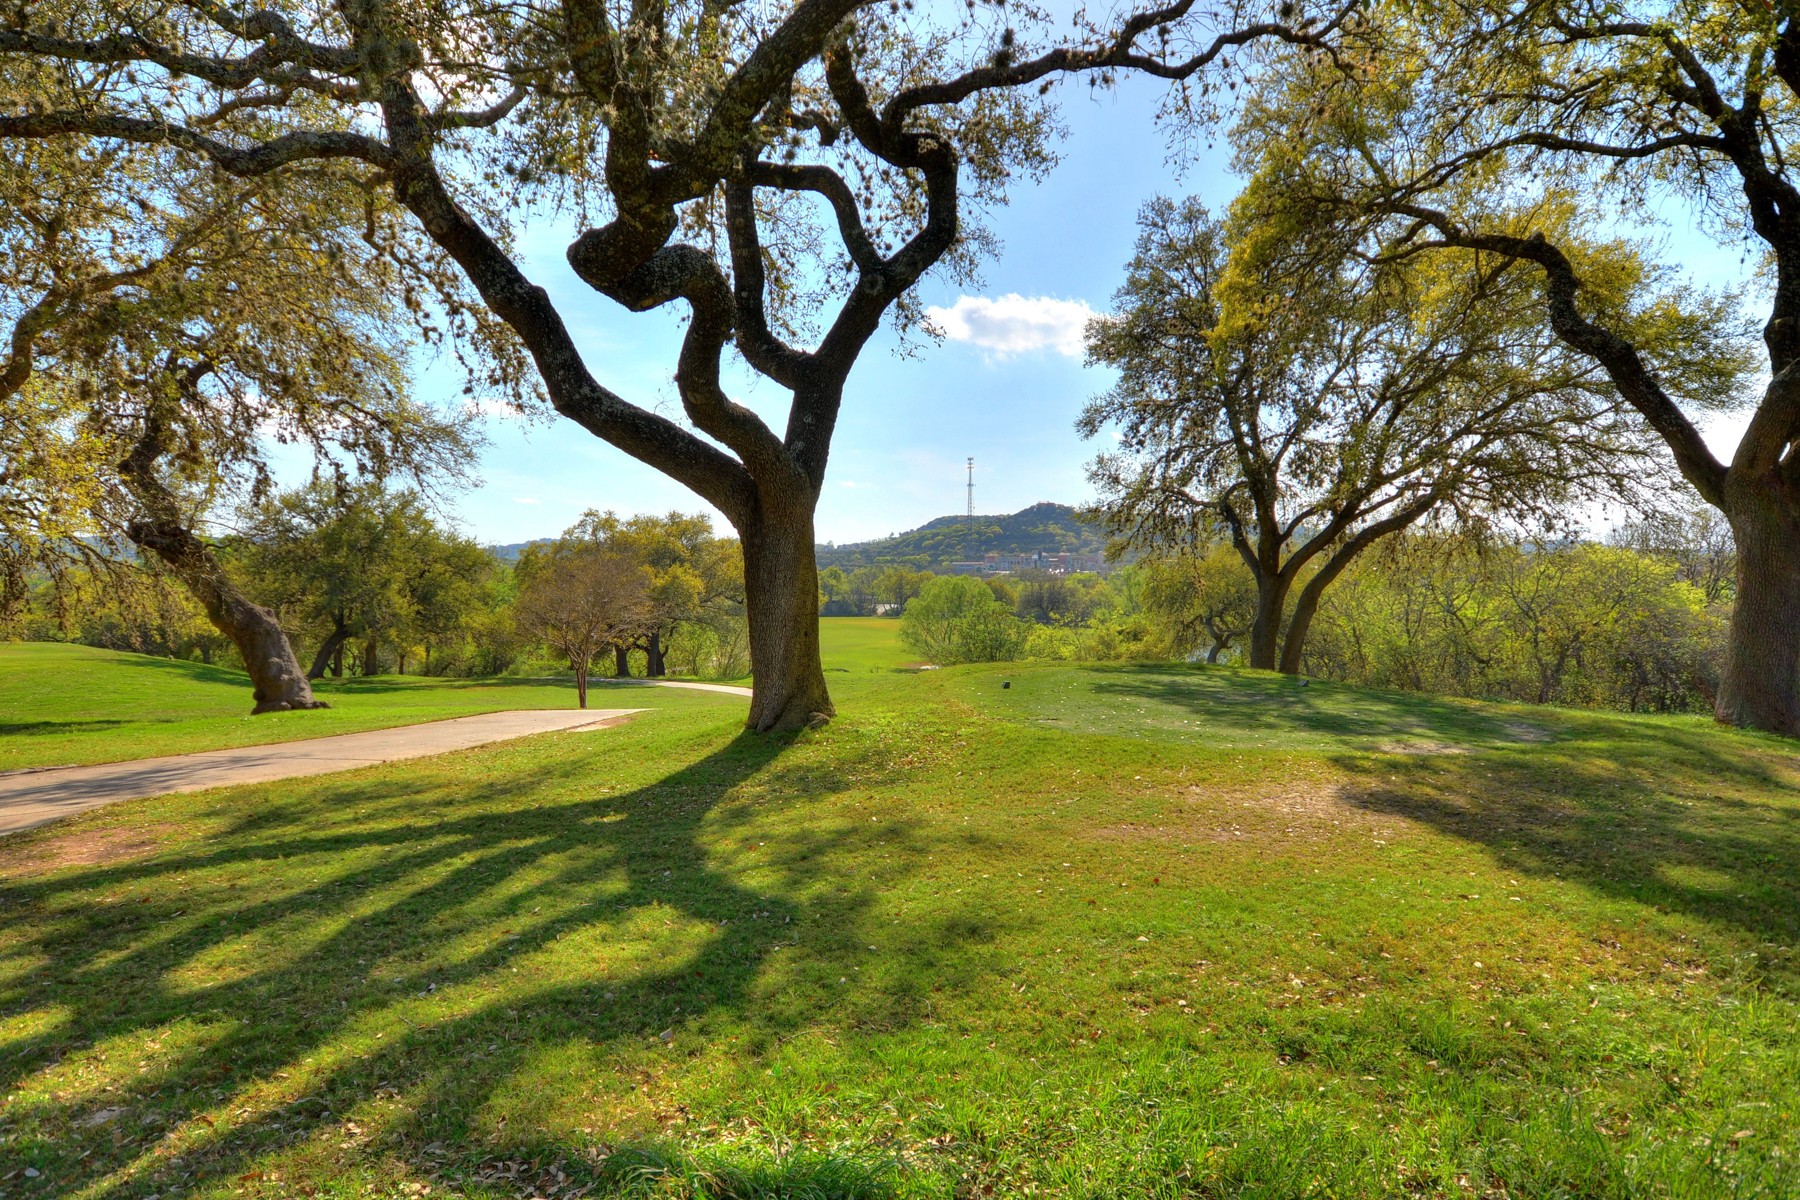 Additional photo for property listing at Beautiful Lot in The Dominion 4 Chaumont San Antonio, Texas 78257 Estados Unidos